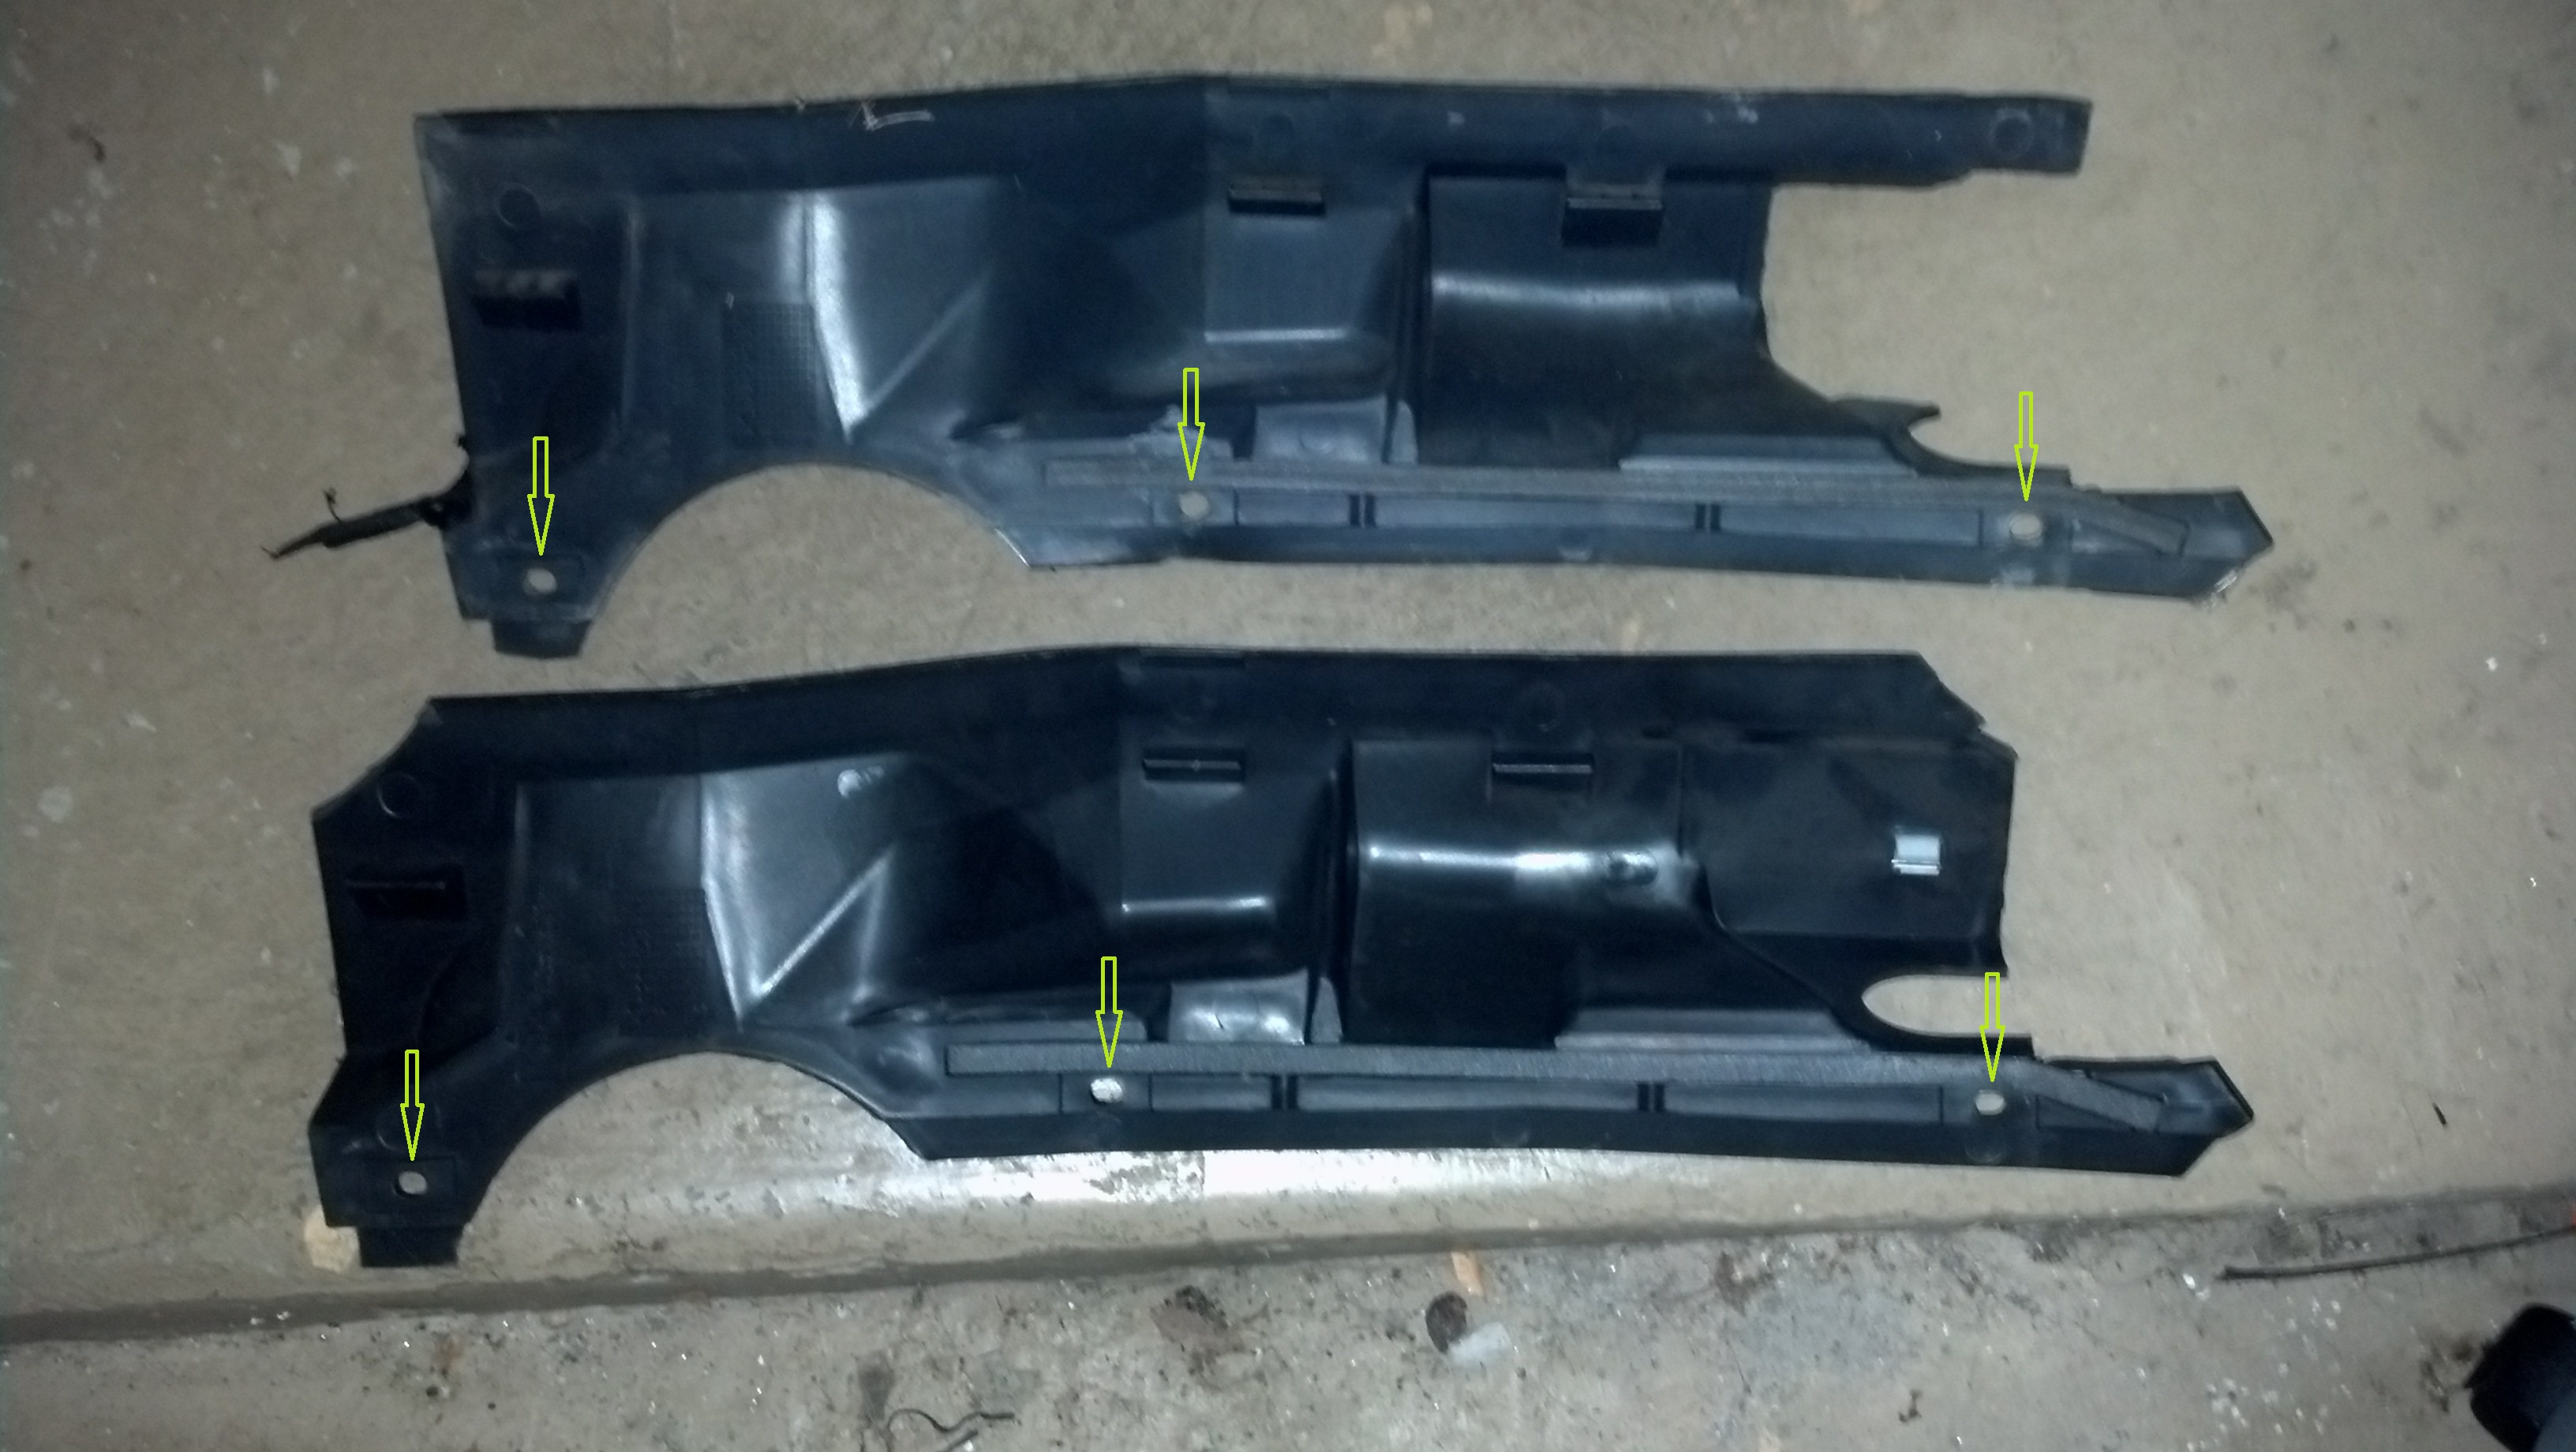 E39 - Replacement of the Left and Right Firewall Covers-img_20131130_192636_329a.jpg